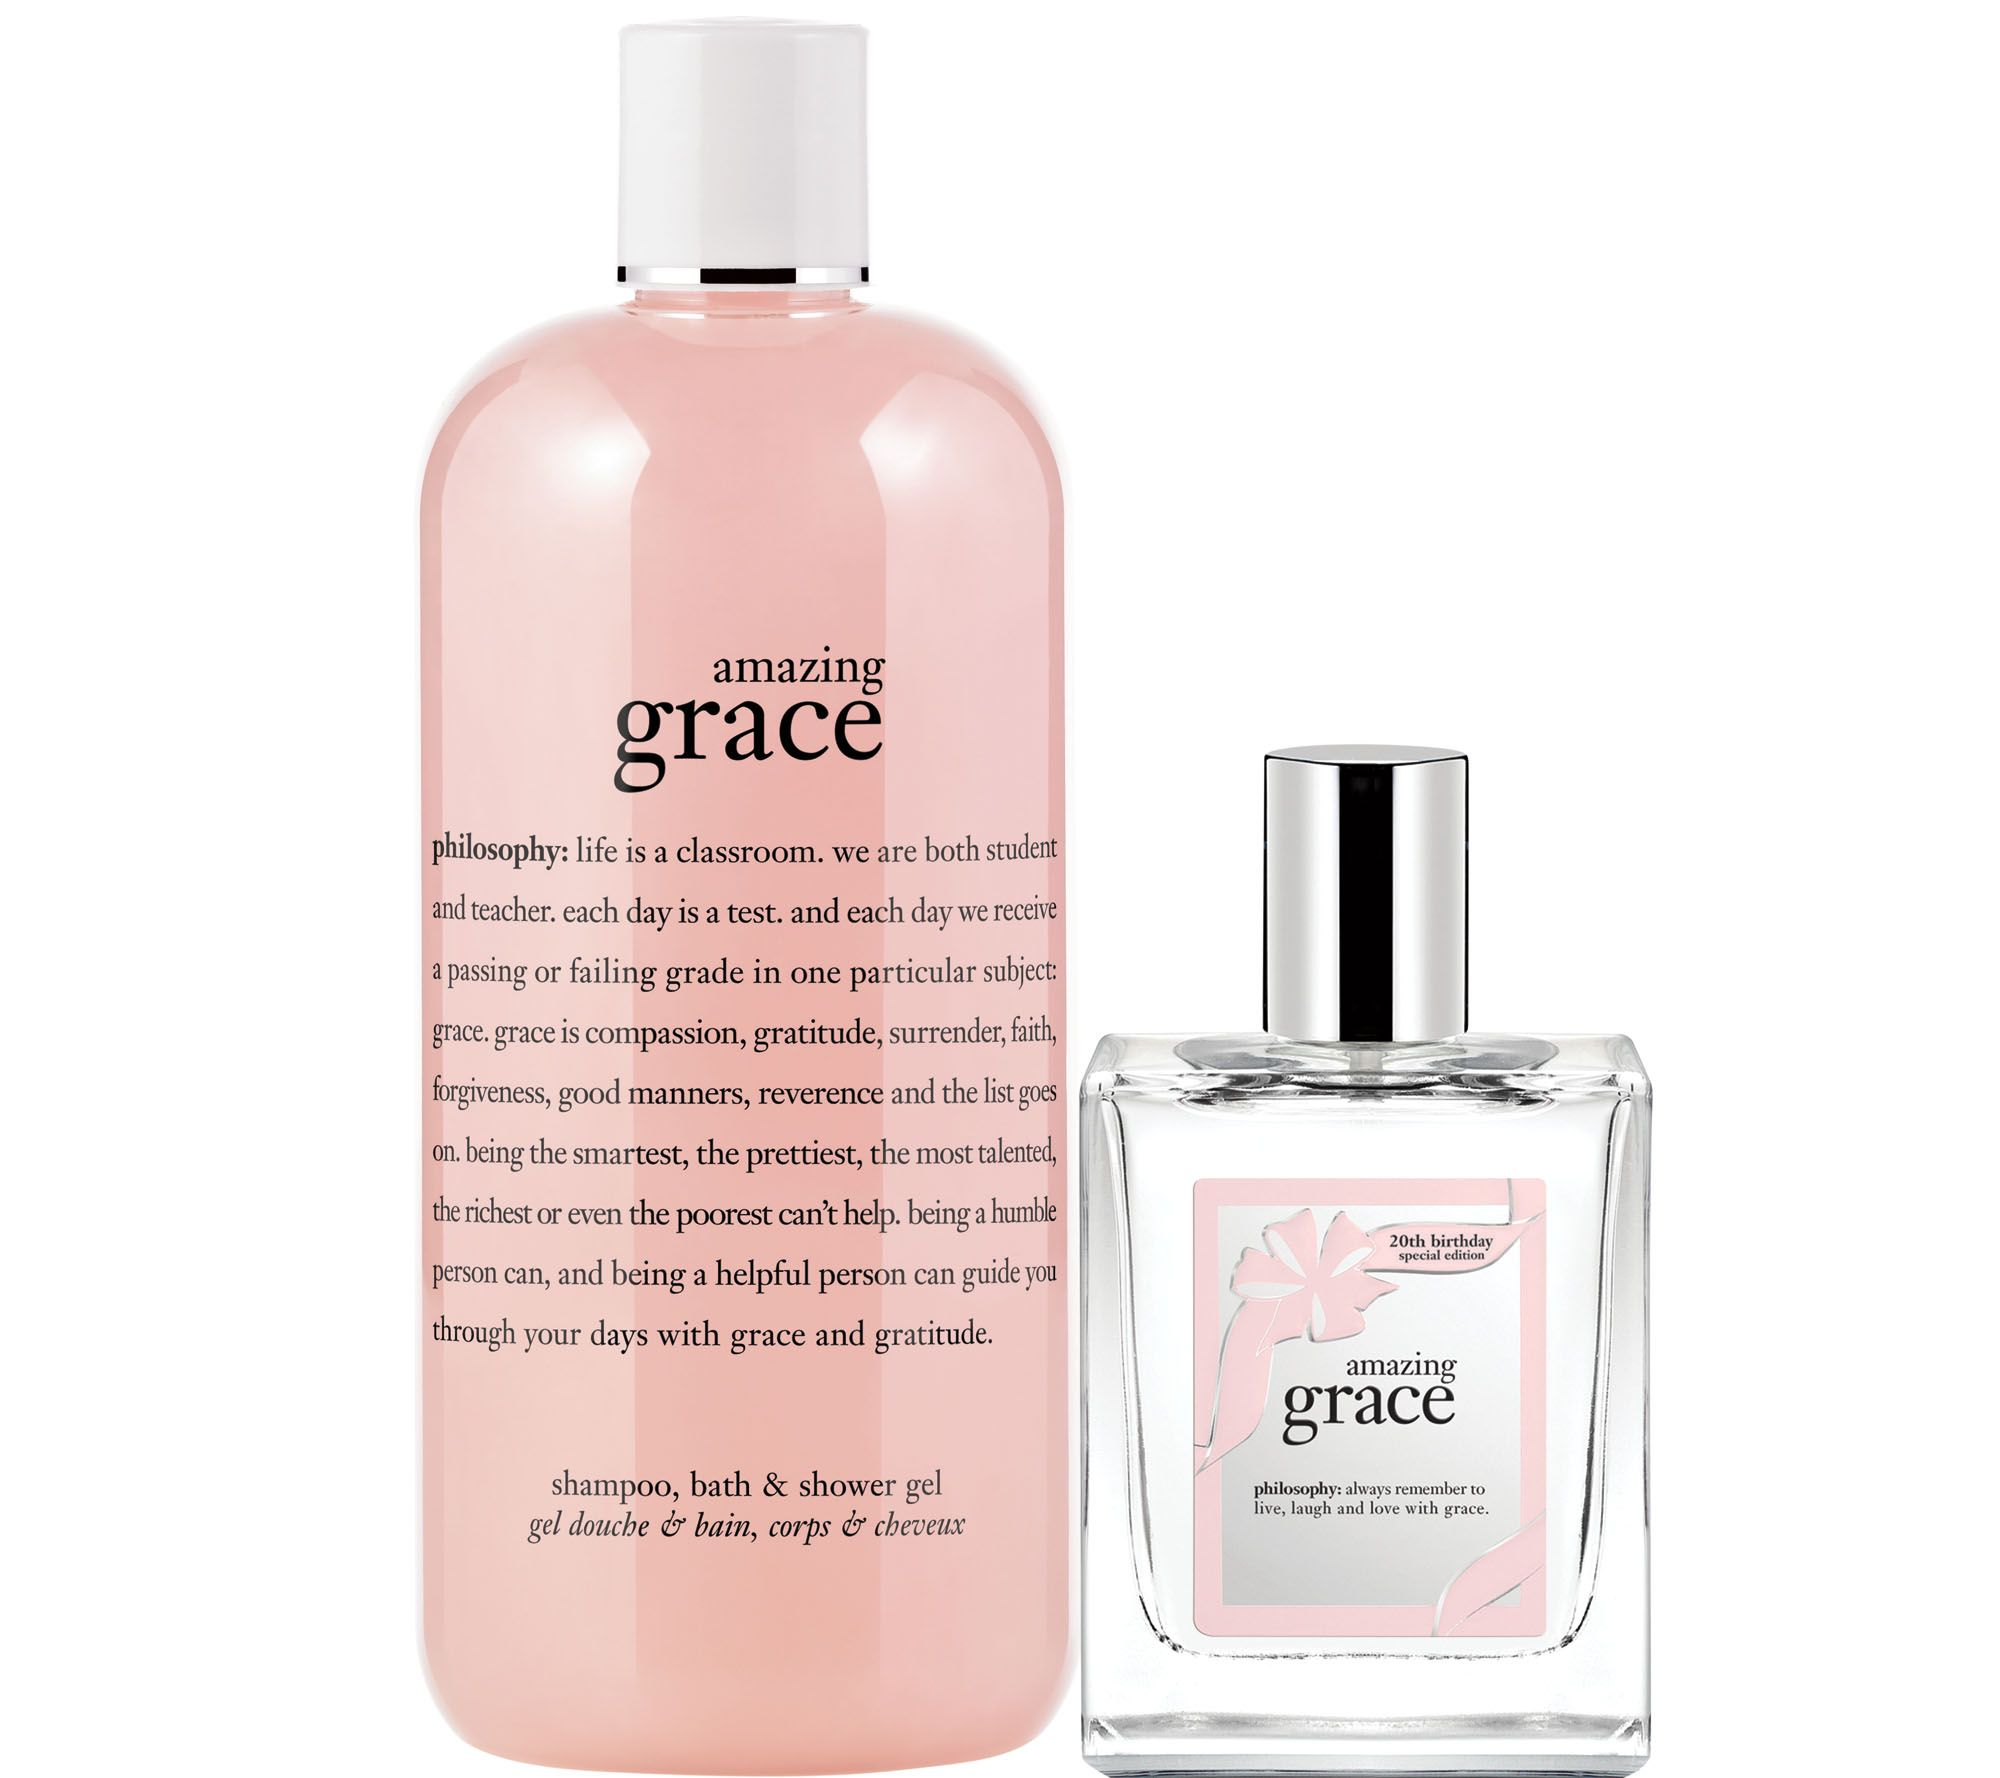 philosophy amazing grace special edition spray fragrance & gel